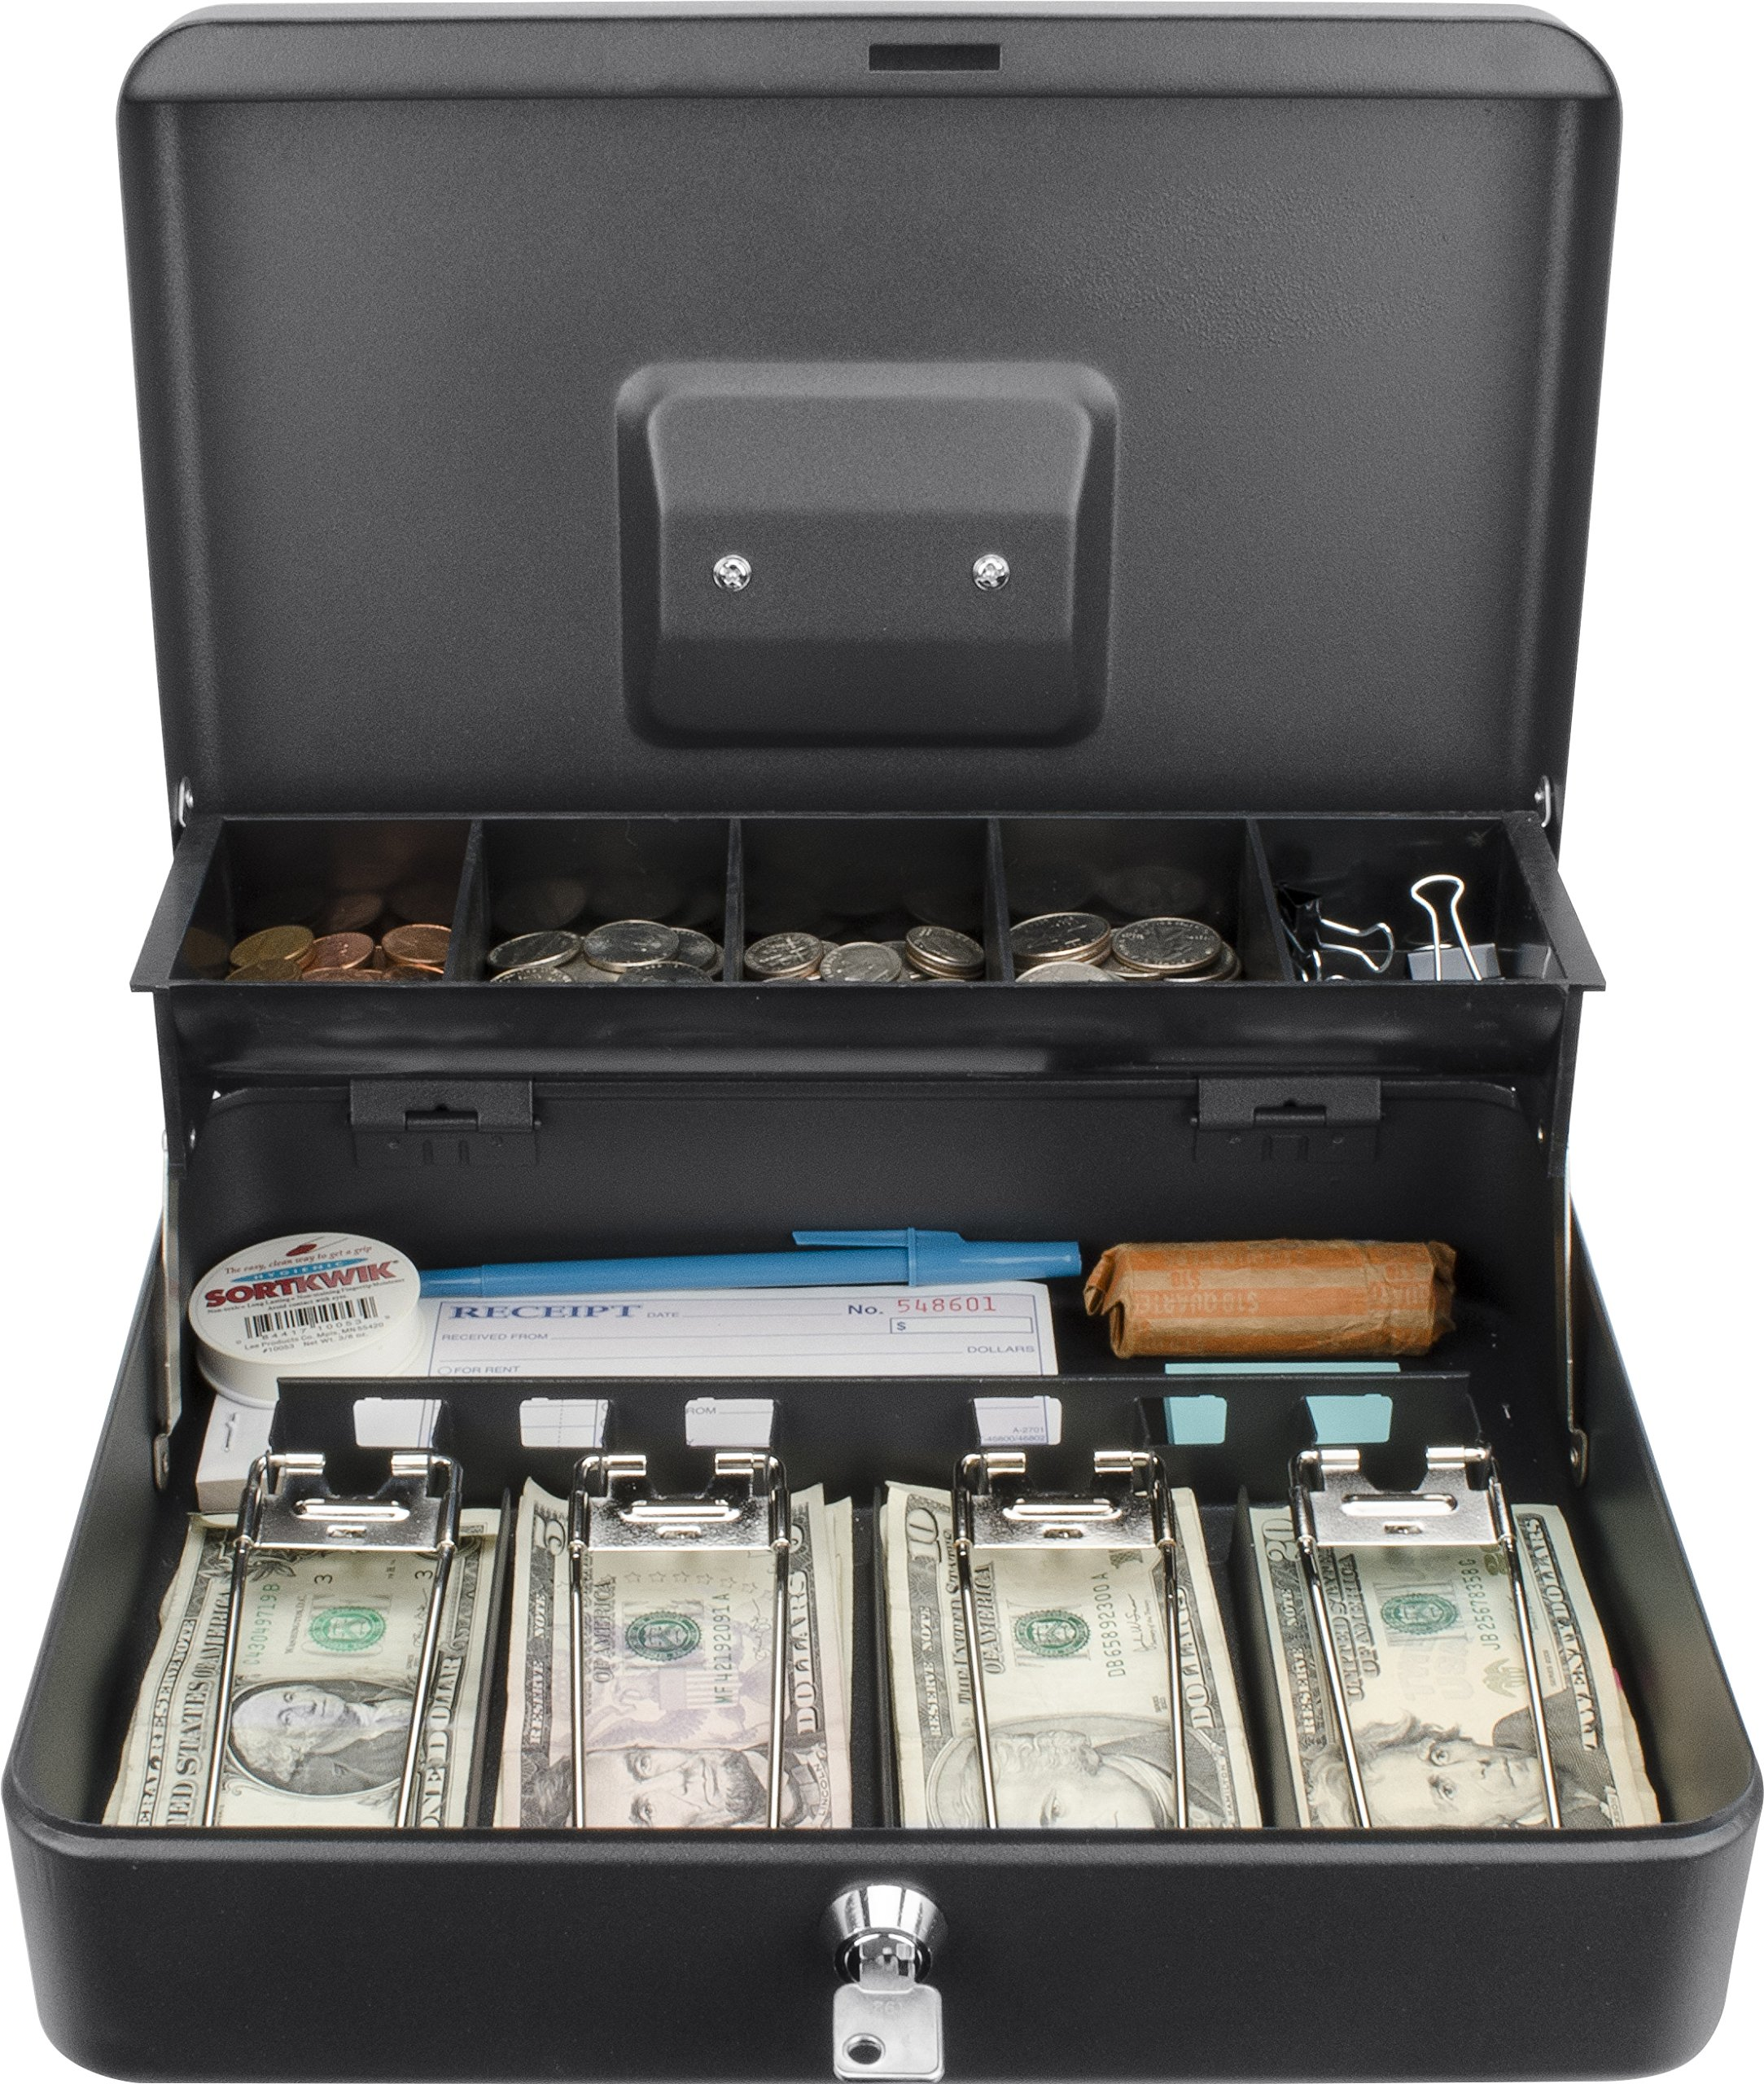 BARSKA 12'' Standard Register Style Cash Box with Key Lock, Black